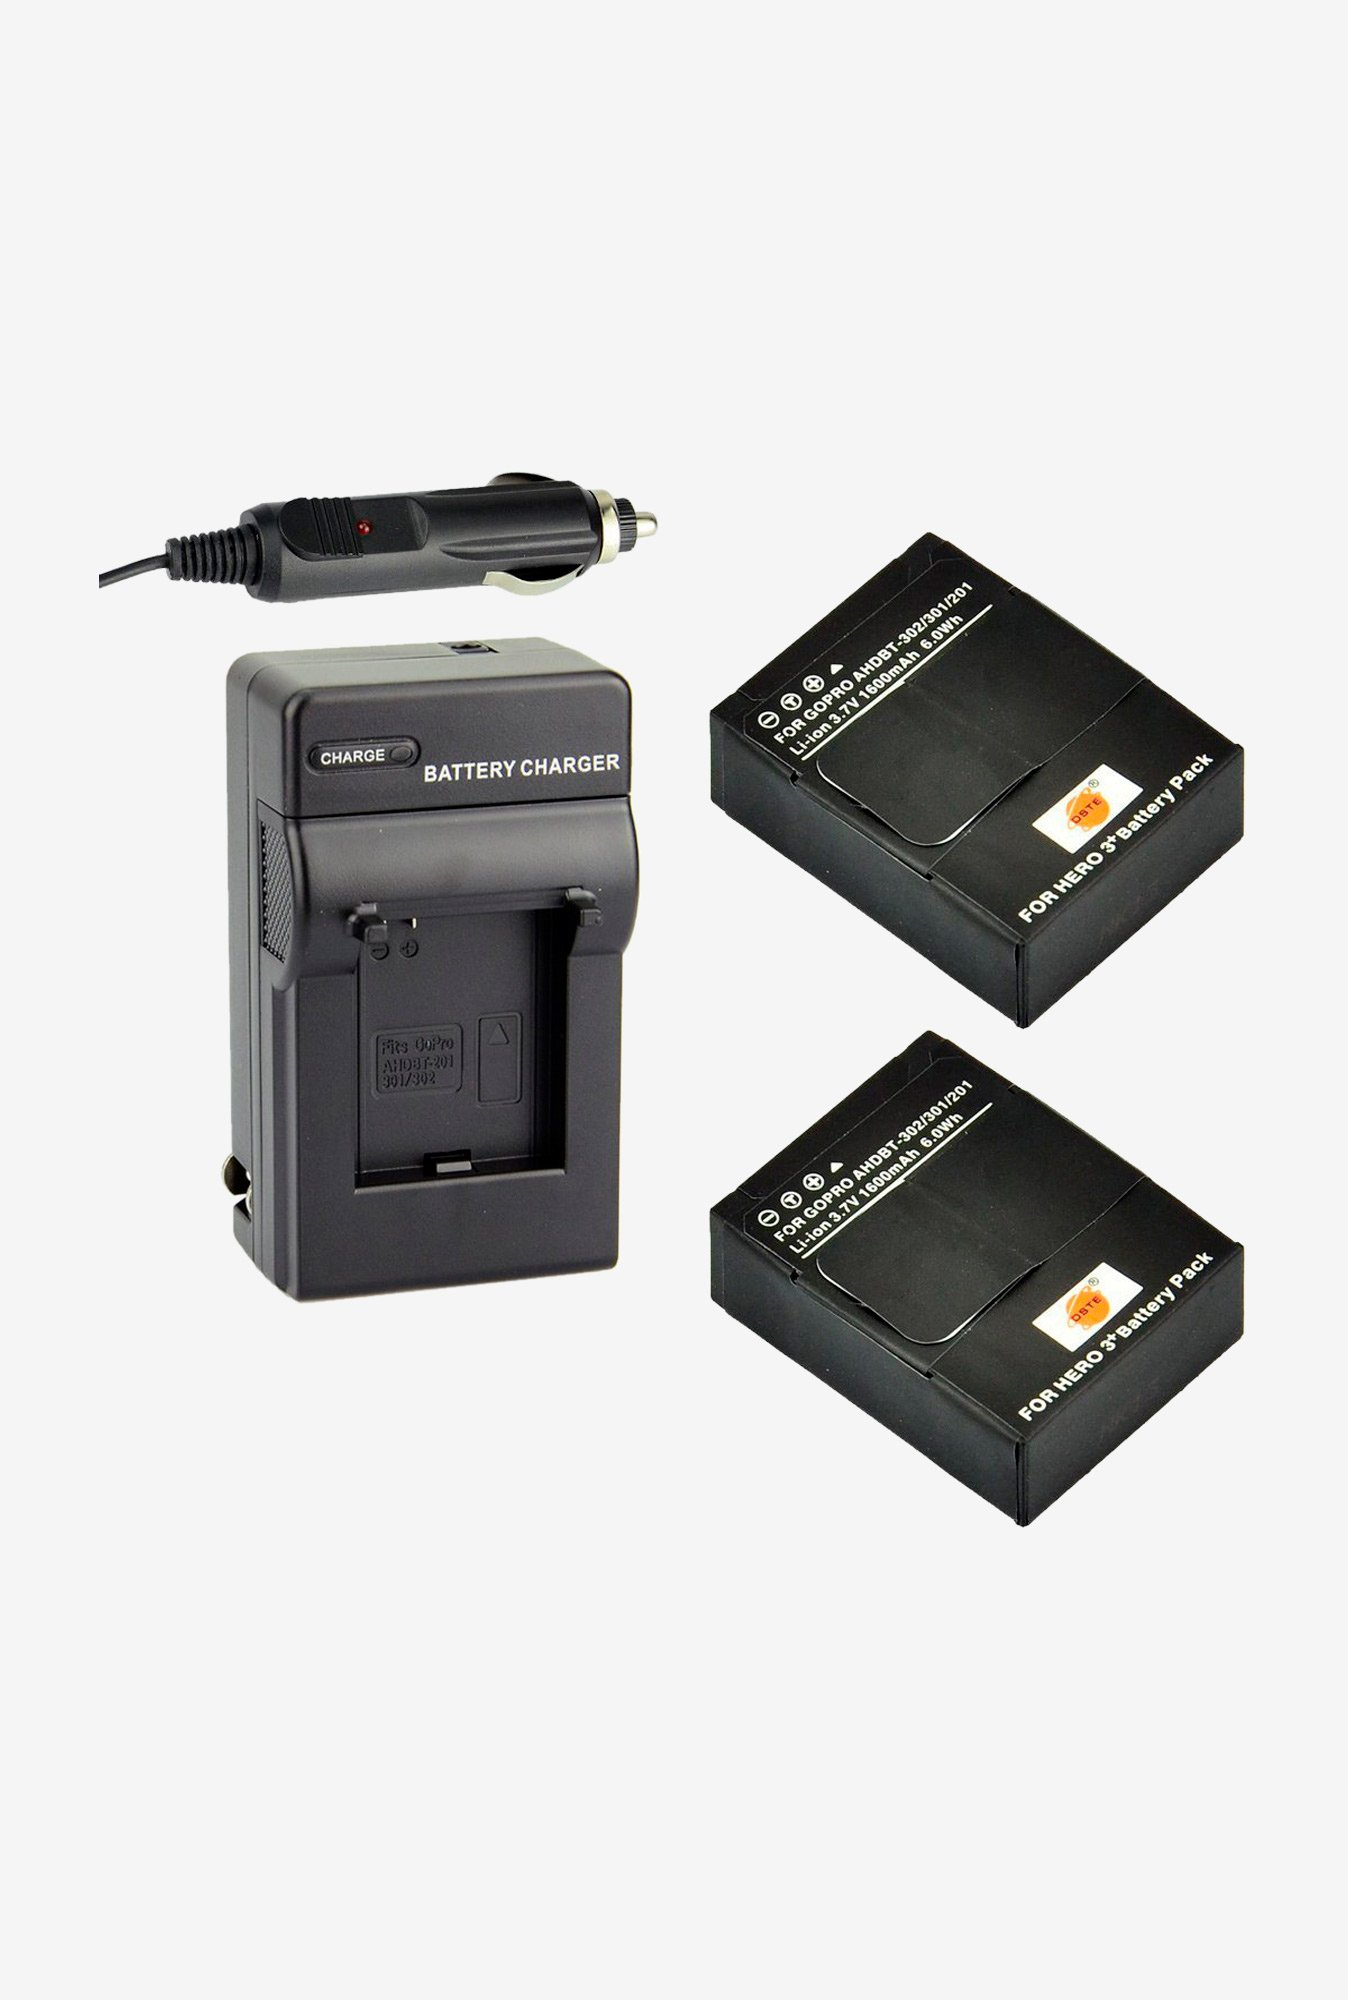 Dste 2Pcs Ahdbt -302 Replacement Li -Ion Battery + Charger Dc137 For Gopro